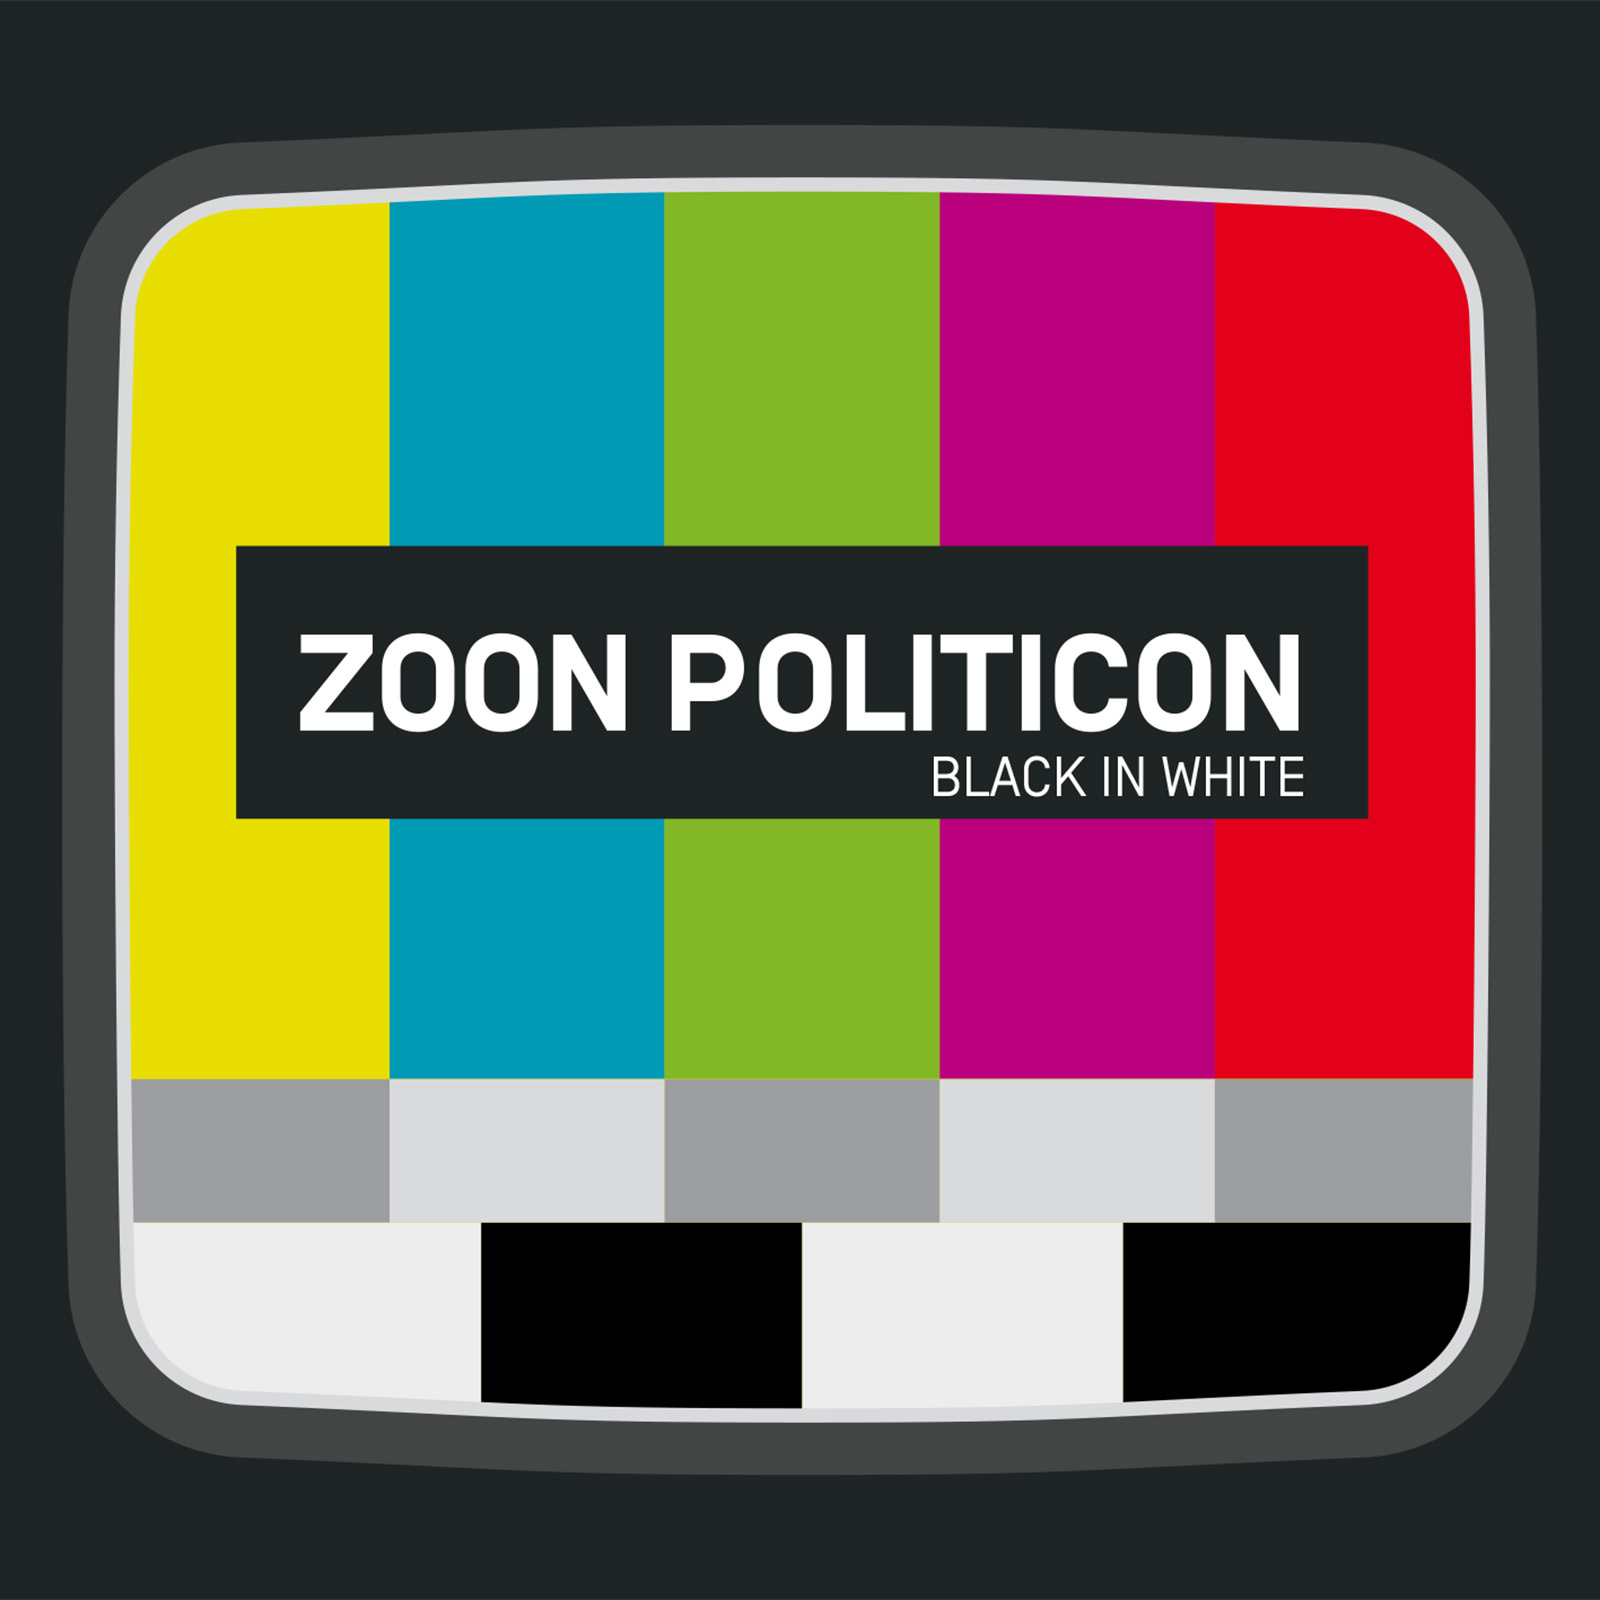 ZOON POLITICON Black In White LIMITED 2CD 2016 (VÖ 03.06)